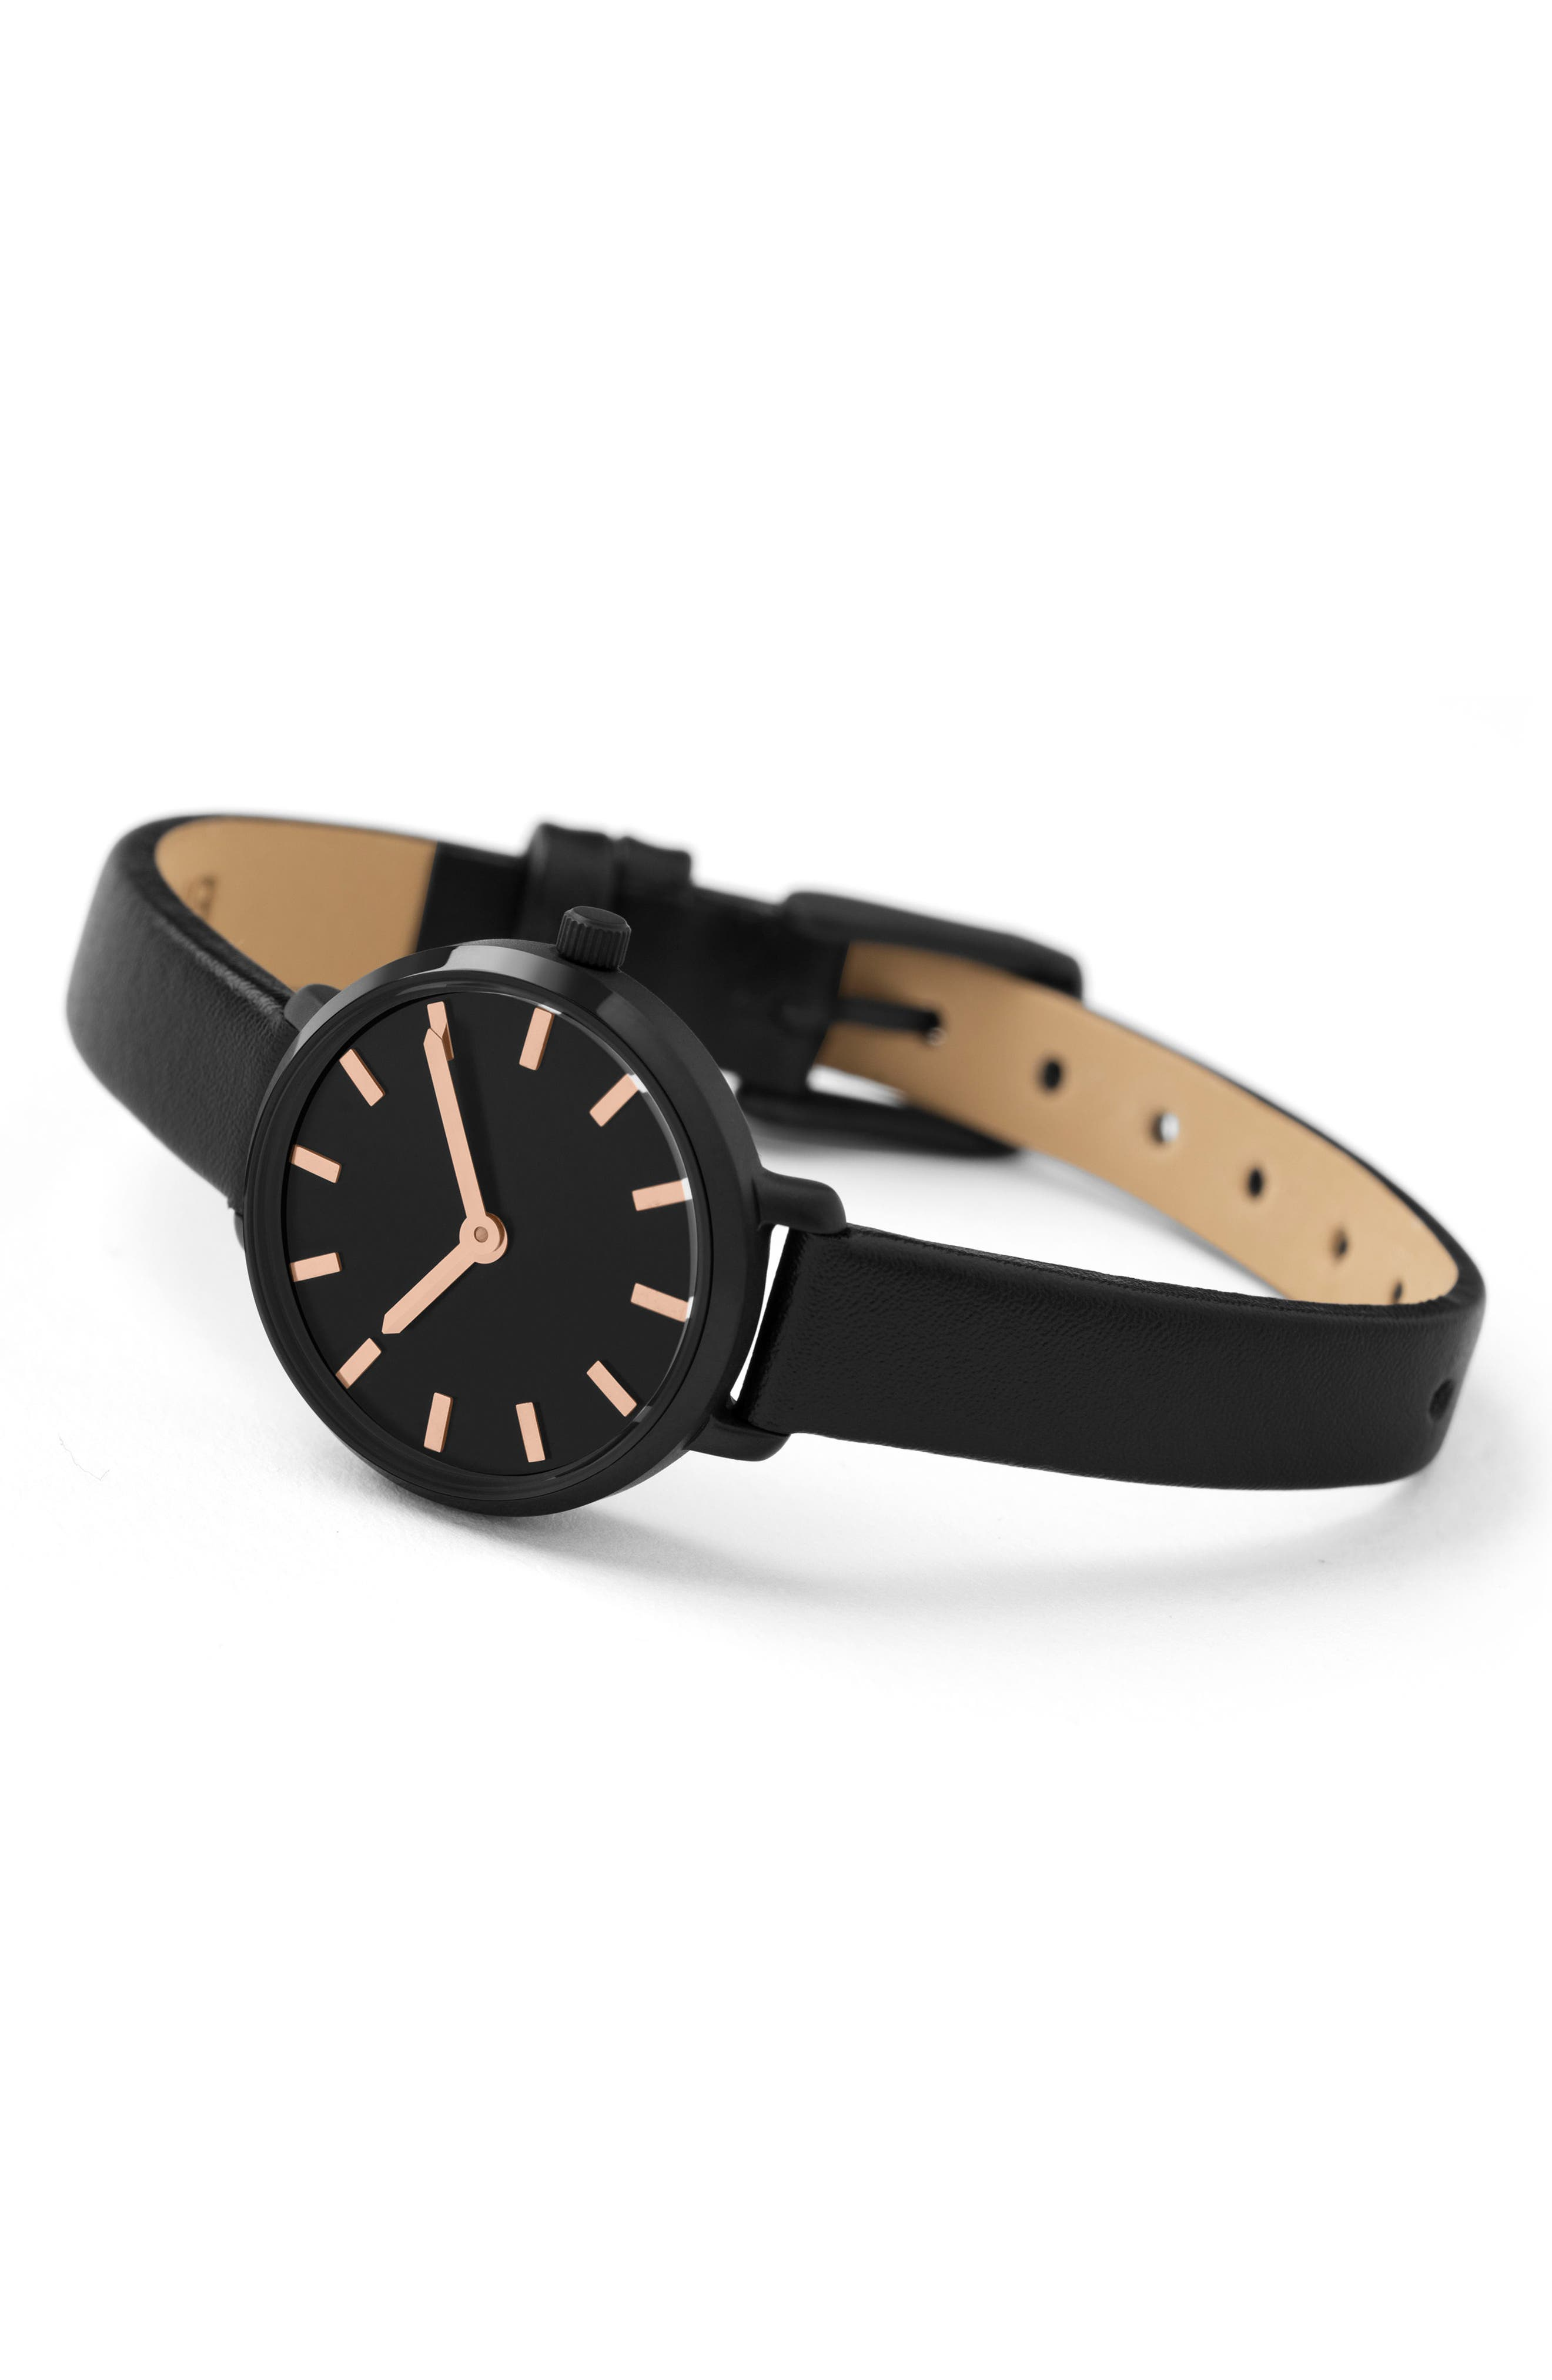 Beverly Round Leather Strap Watch, 26mm,                             Alternate thumbnail 2, color,                             Black